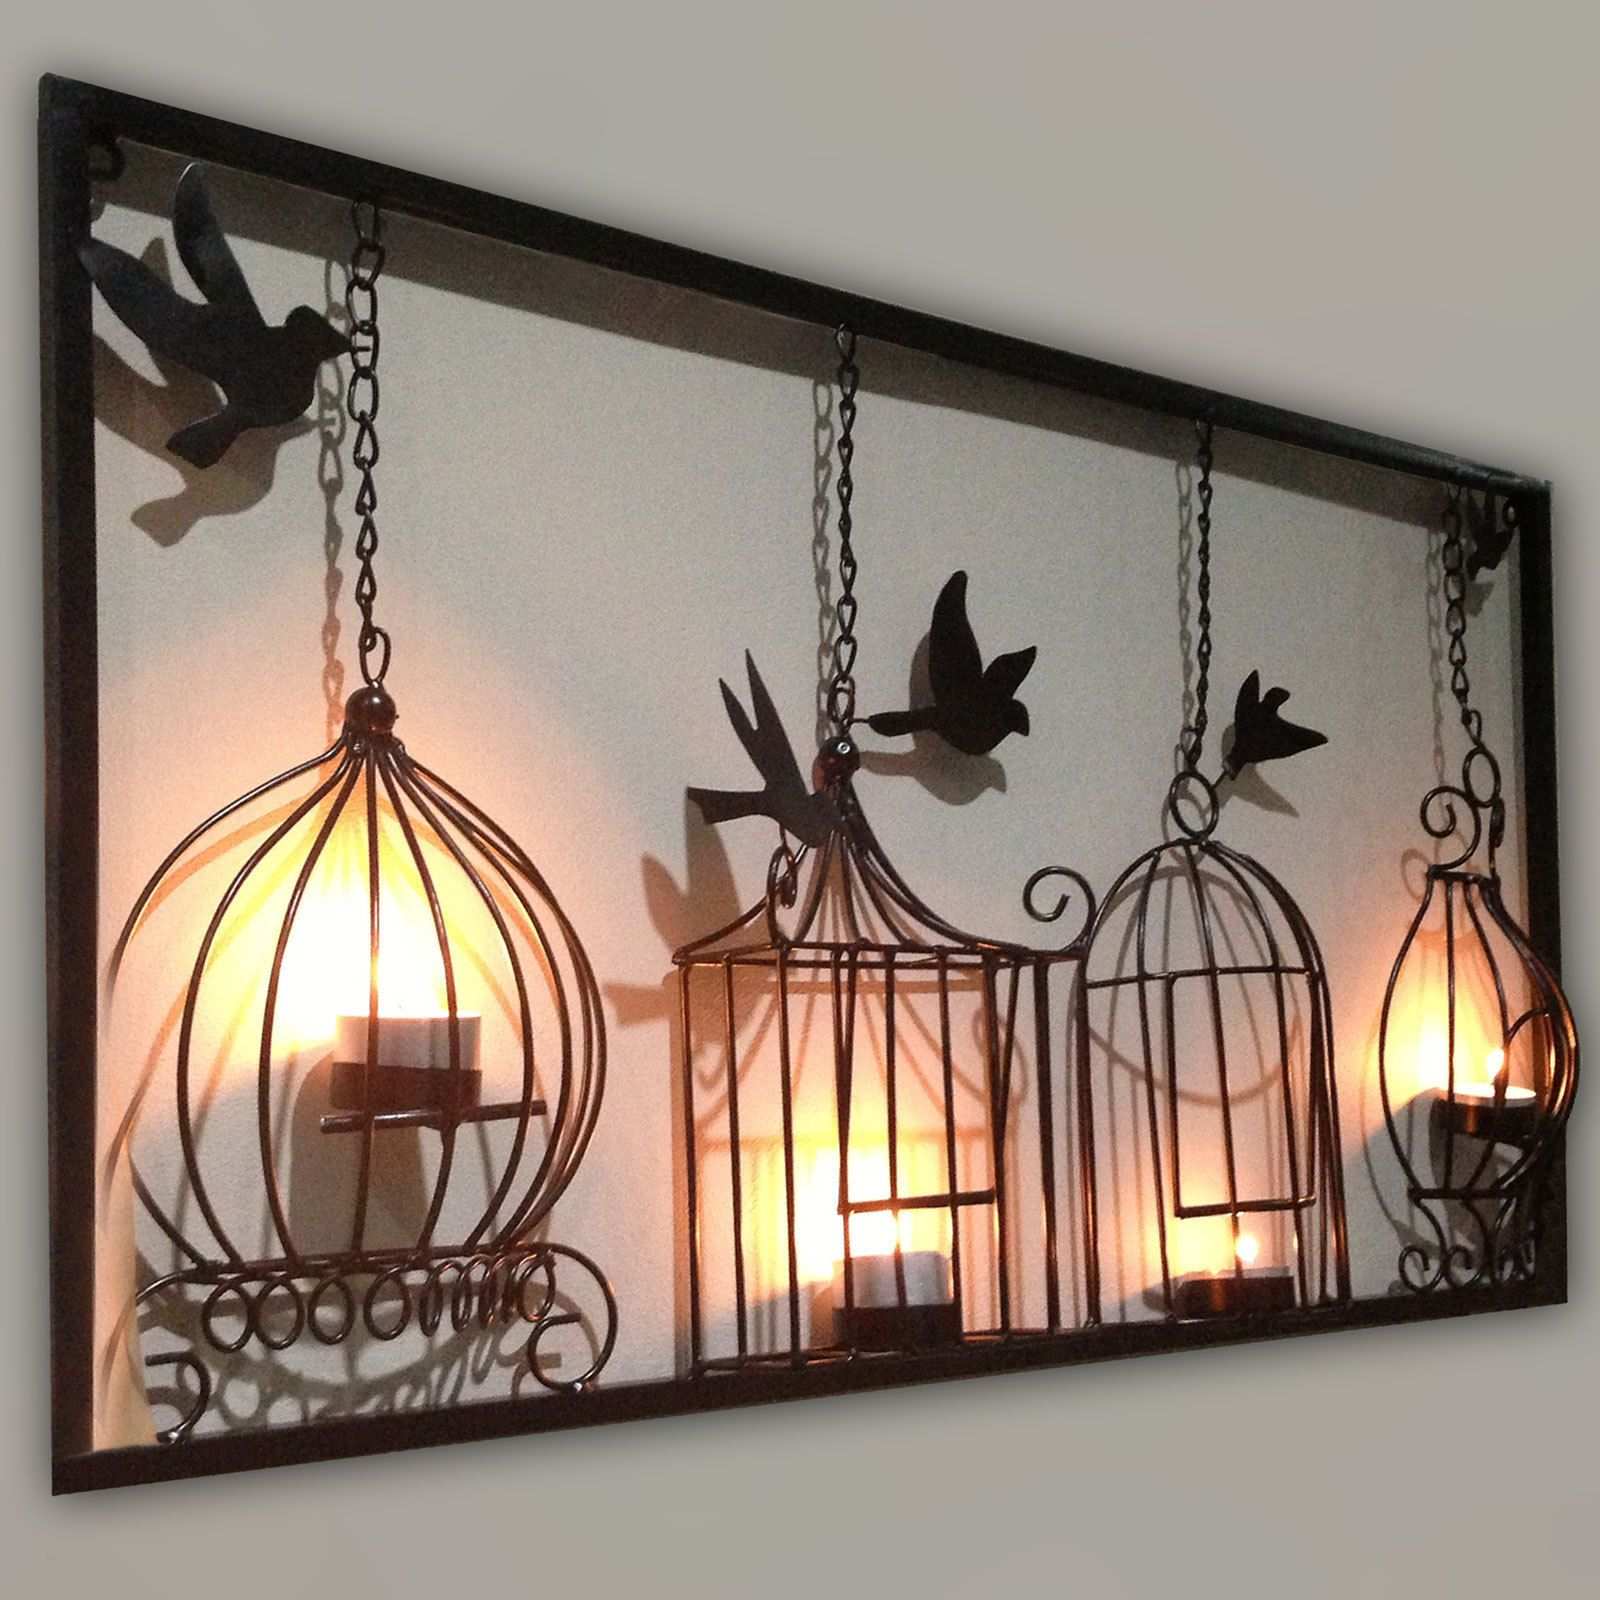 Small Wrought Iron Wall Art Birdcage Tea Light Wall Art Metal Wall Hanging Candle Holder Black